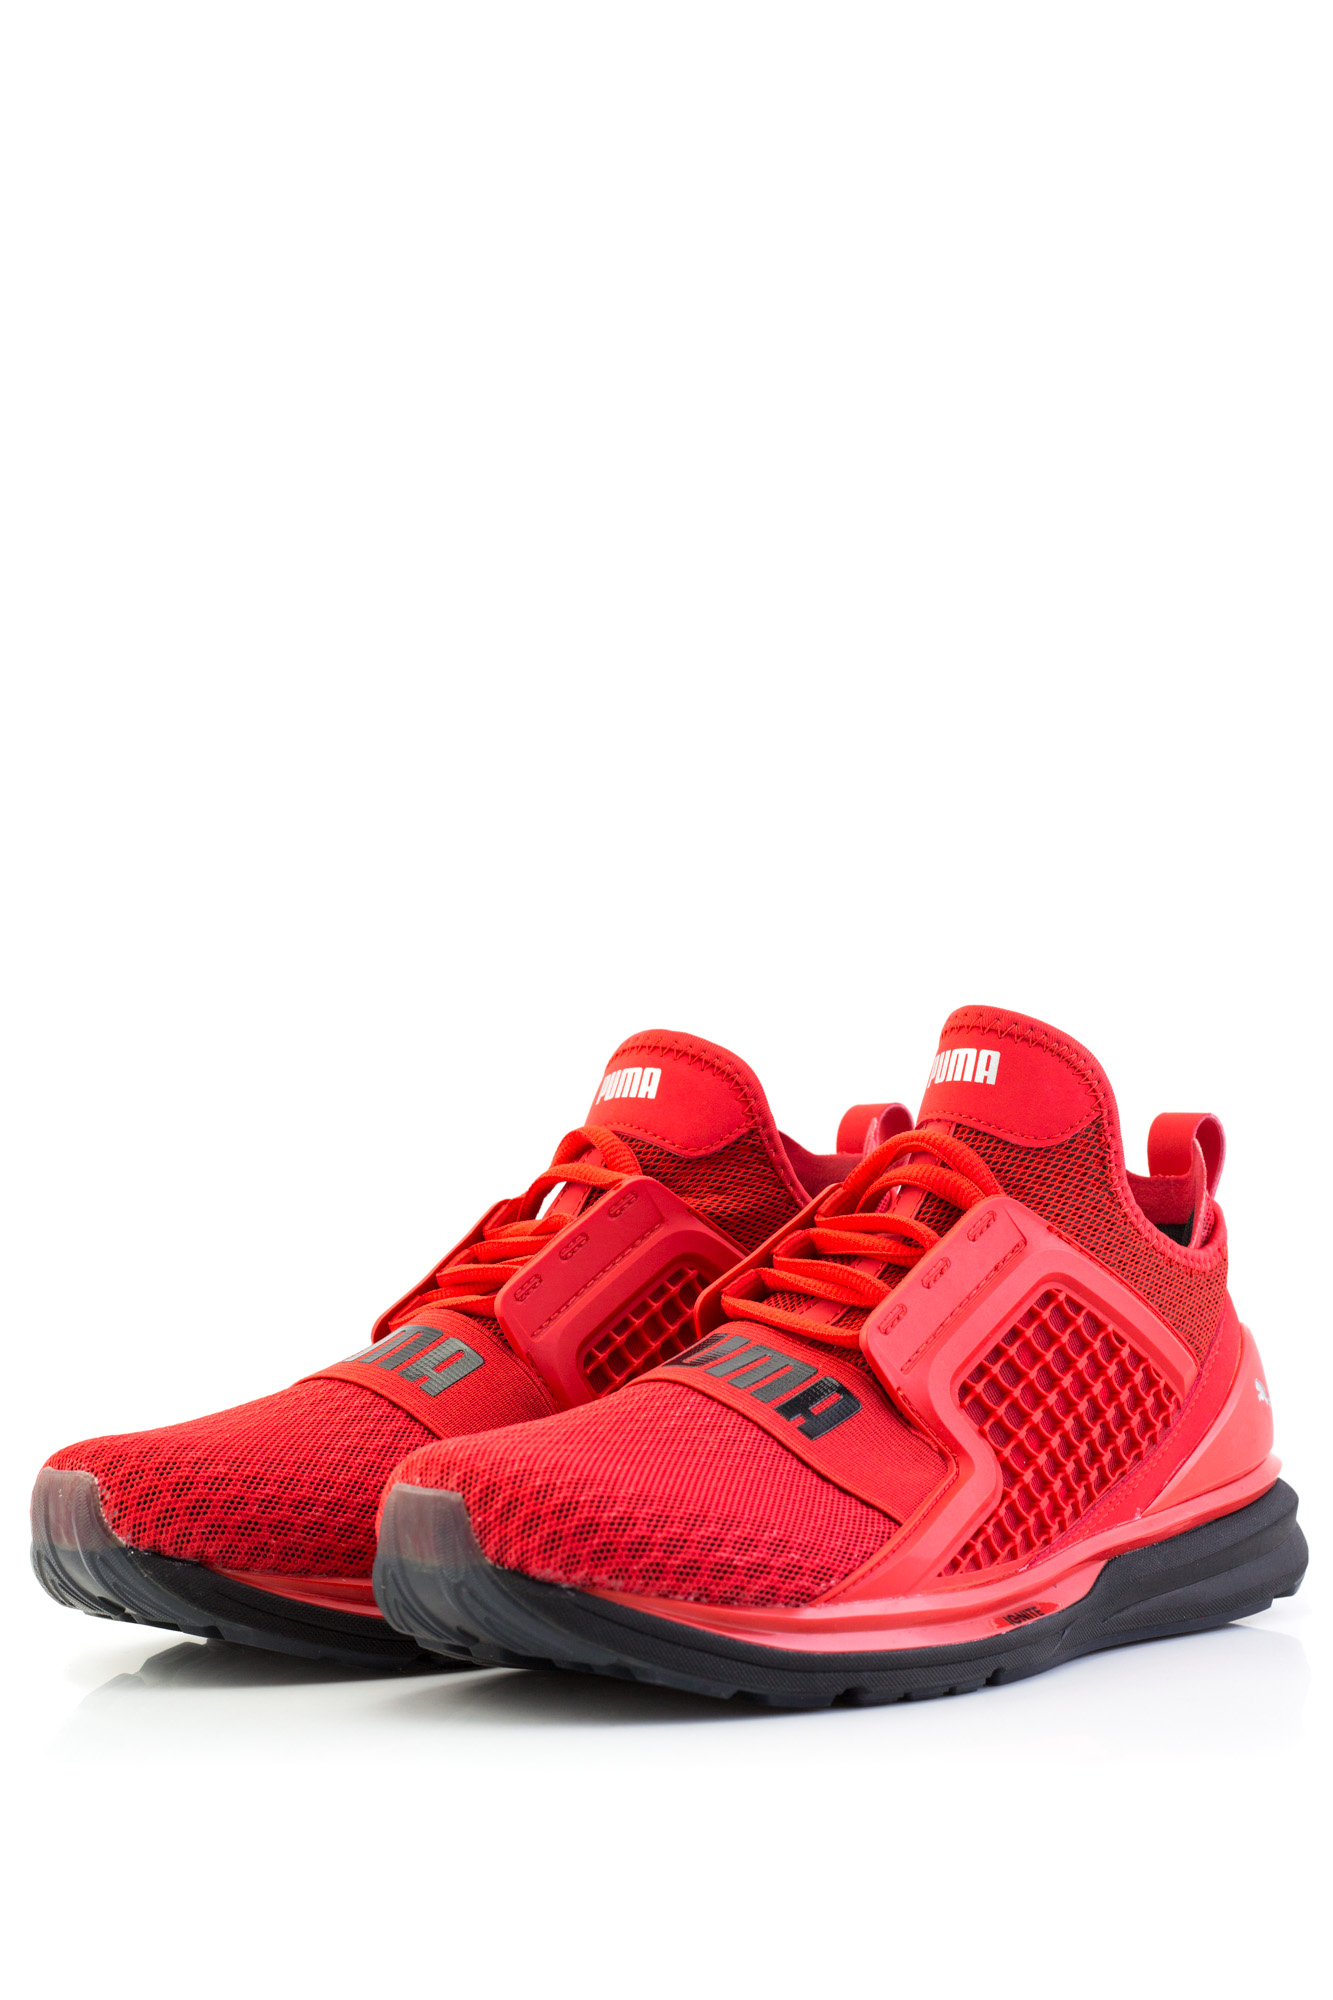 Puma - Ignite limitless high risk red